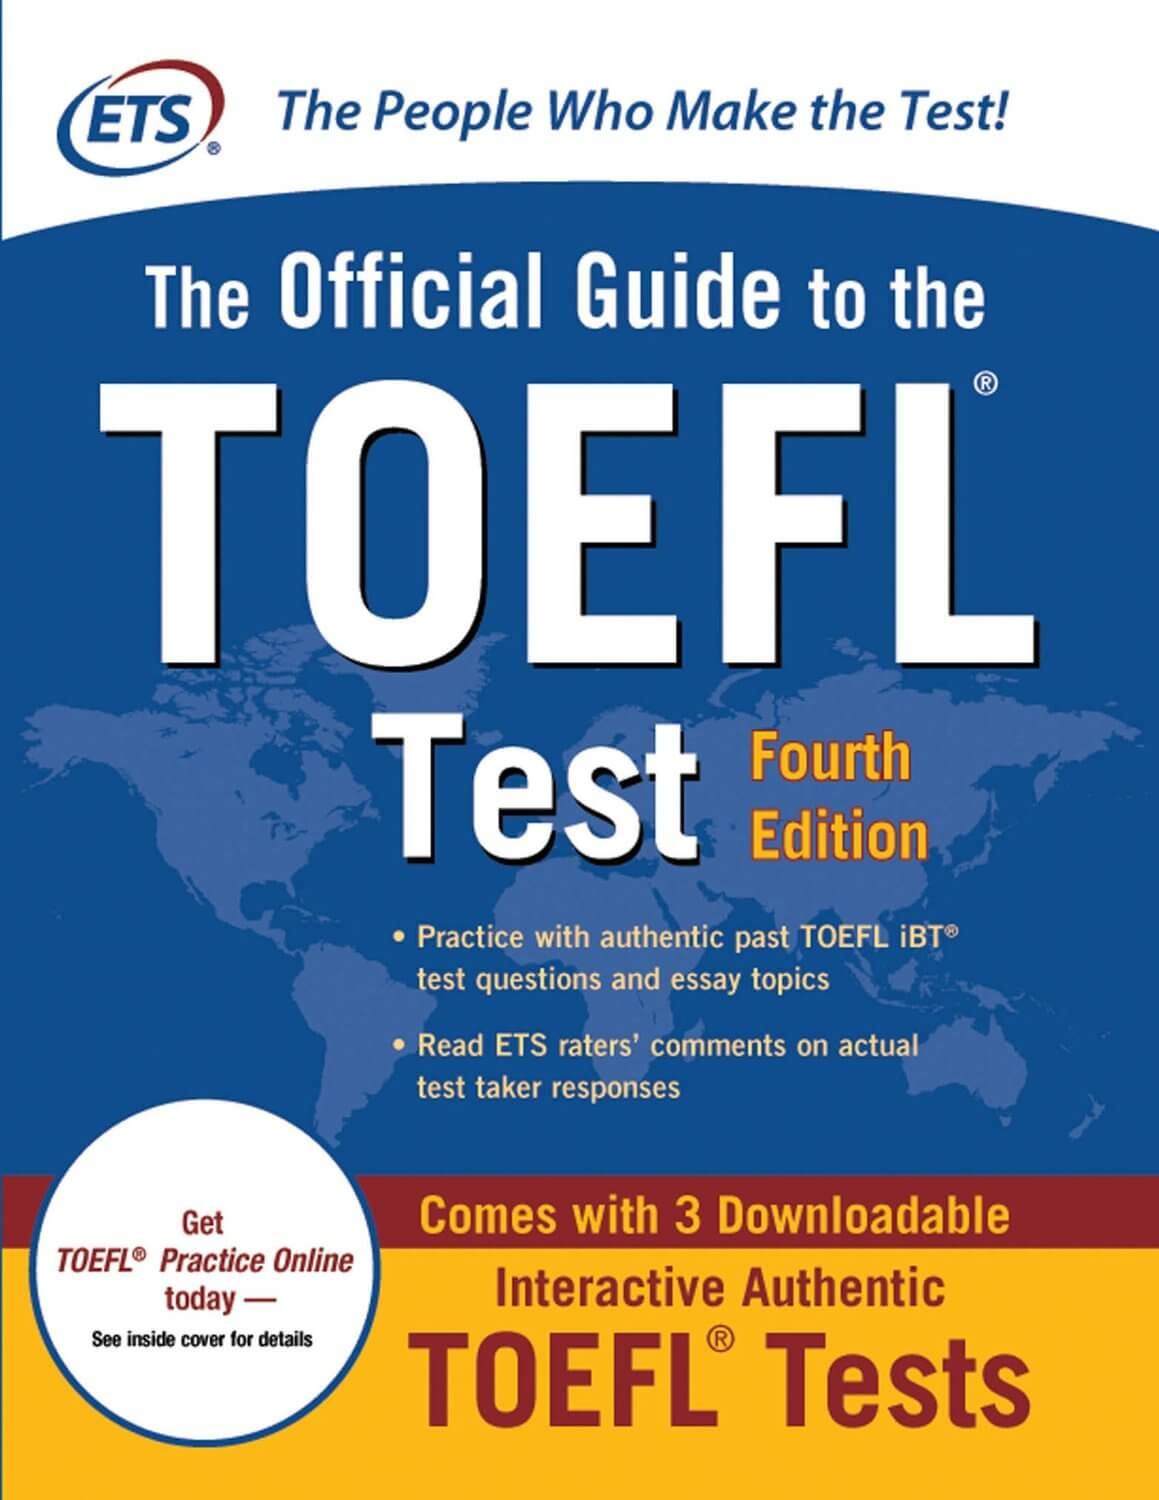 The official guide to the toefl test fourth edition book review fourth edition book review by lucas fink on september 27 2013 in book reviews the official guide to the toefl test fandeluxe Gallery